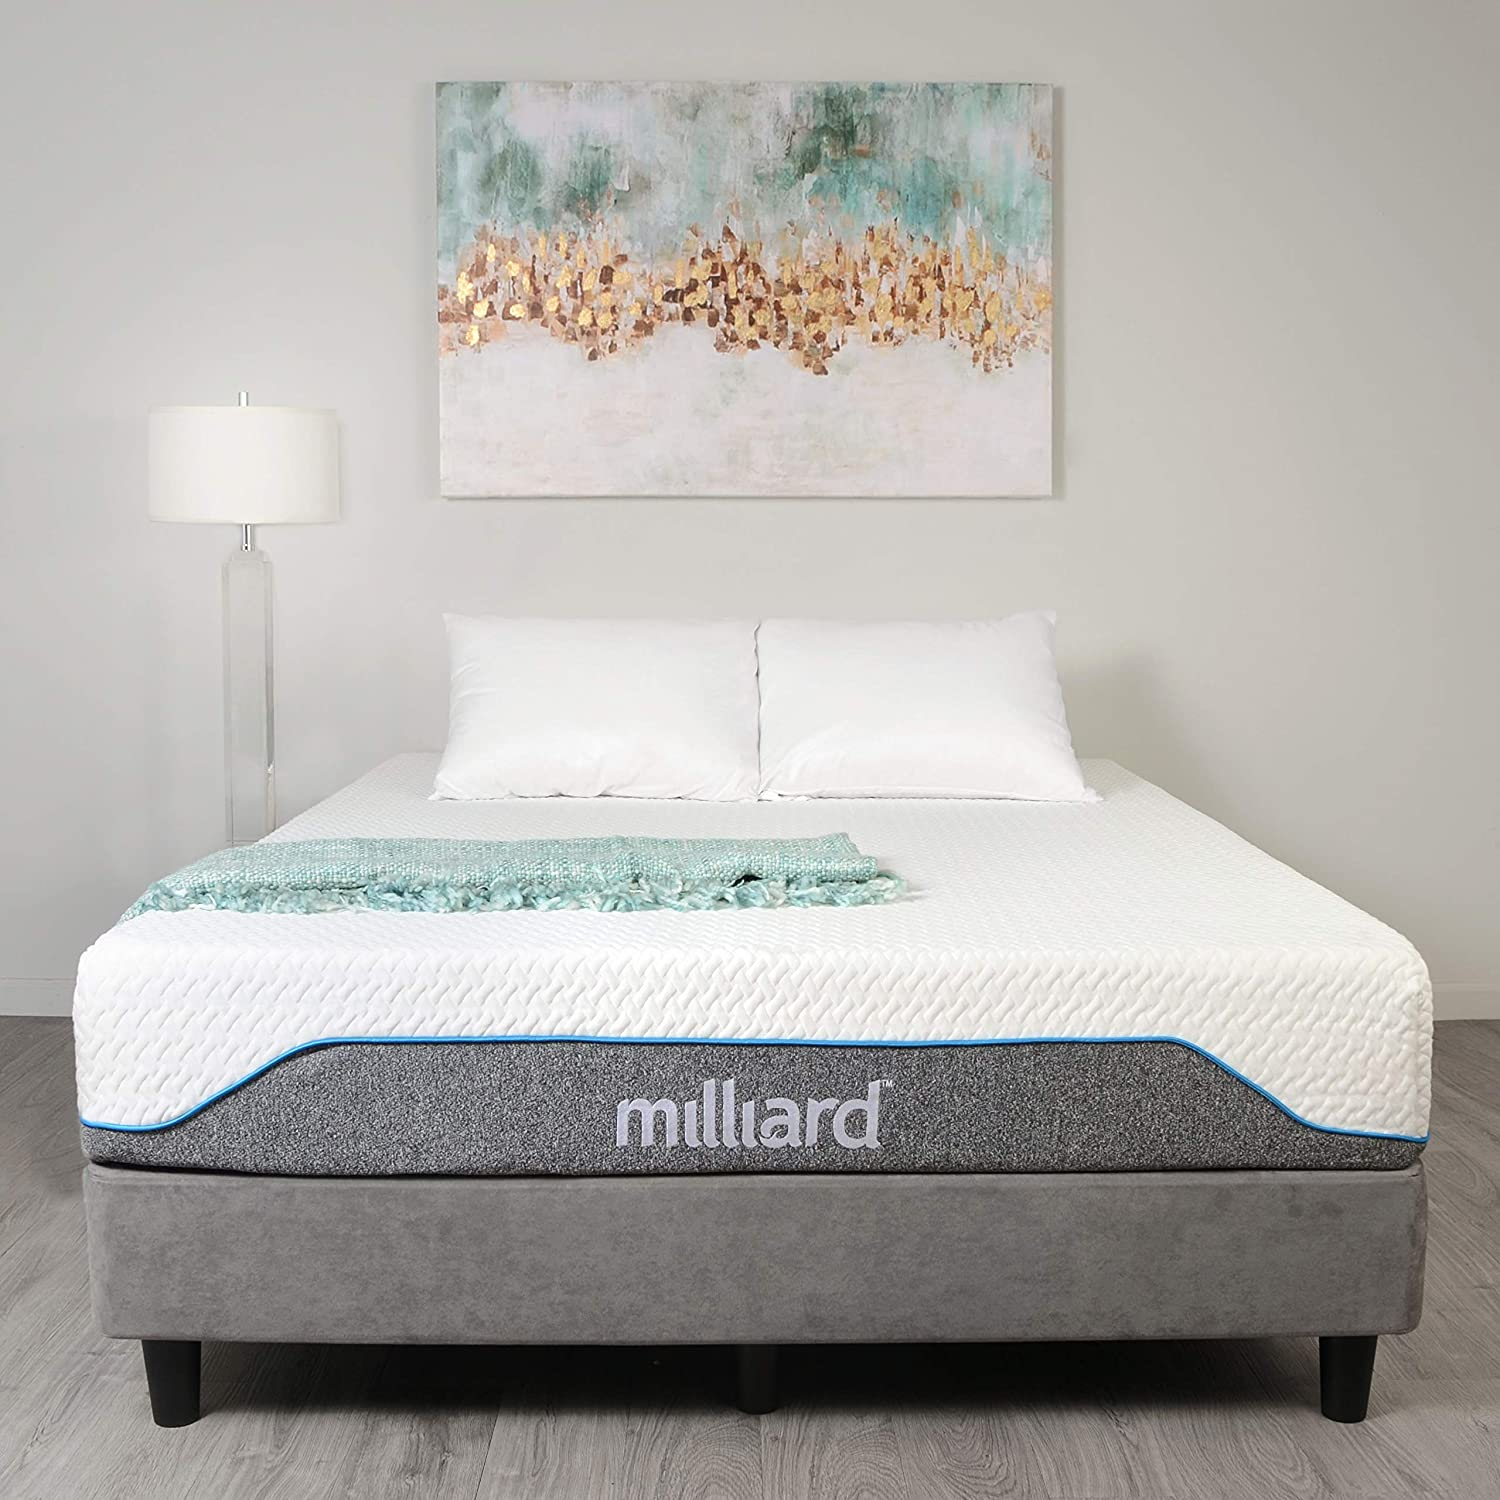 Milliard Firm Classic King Memory Foam Mattress